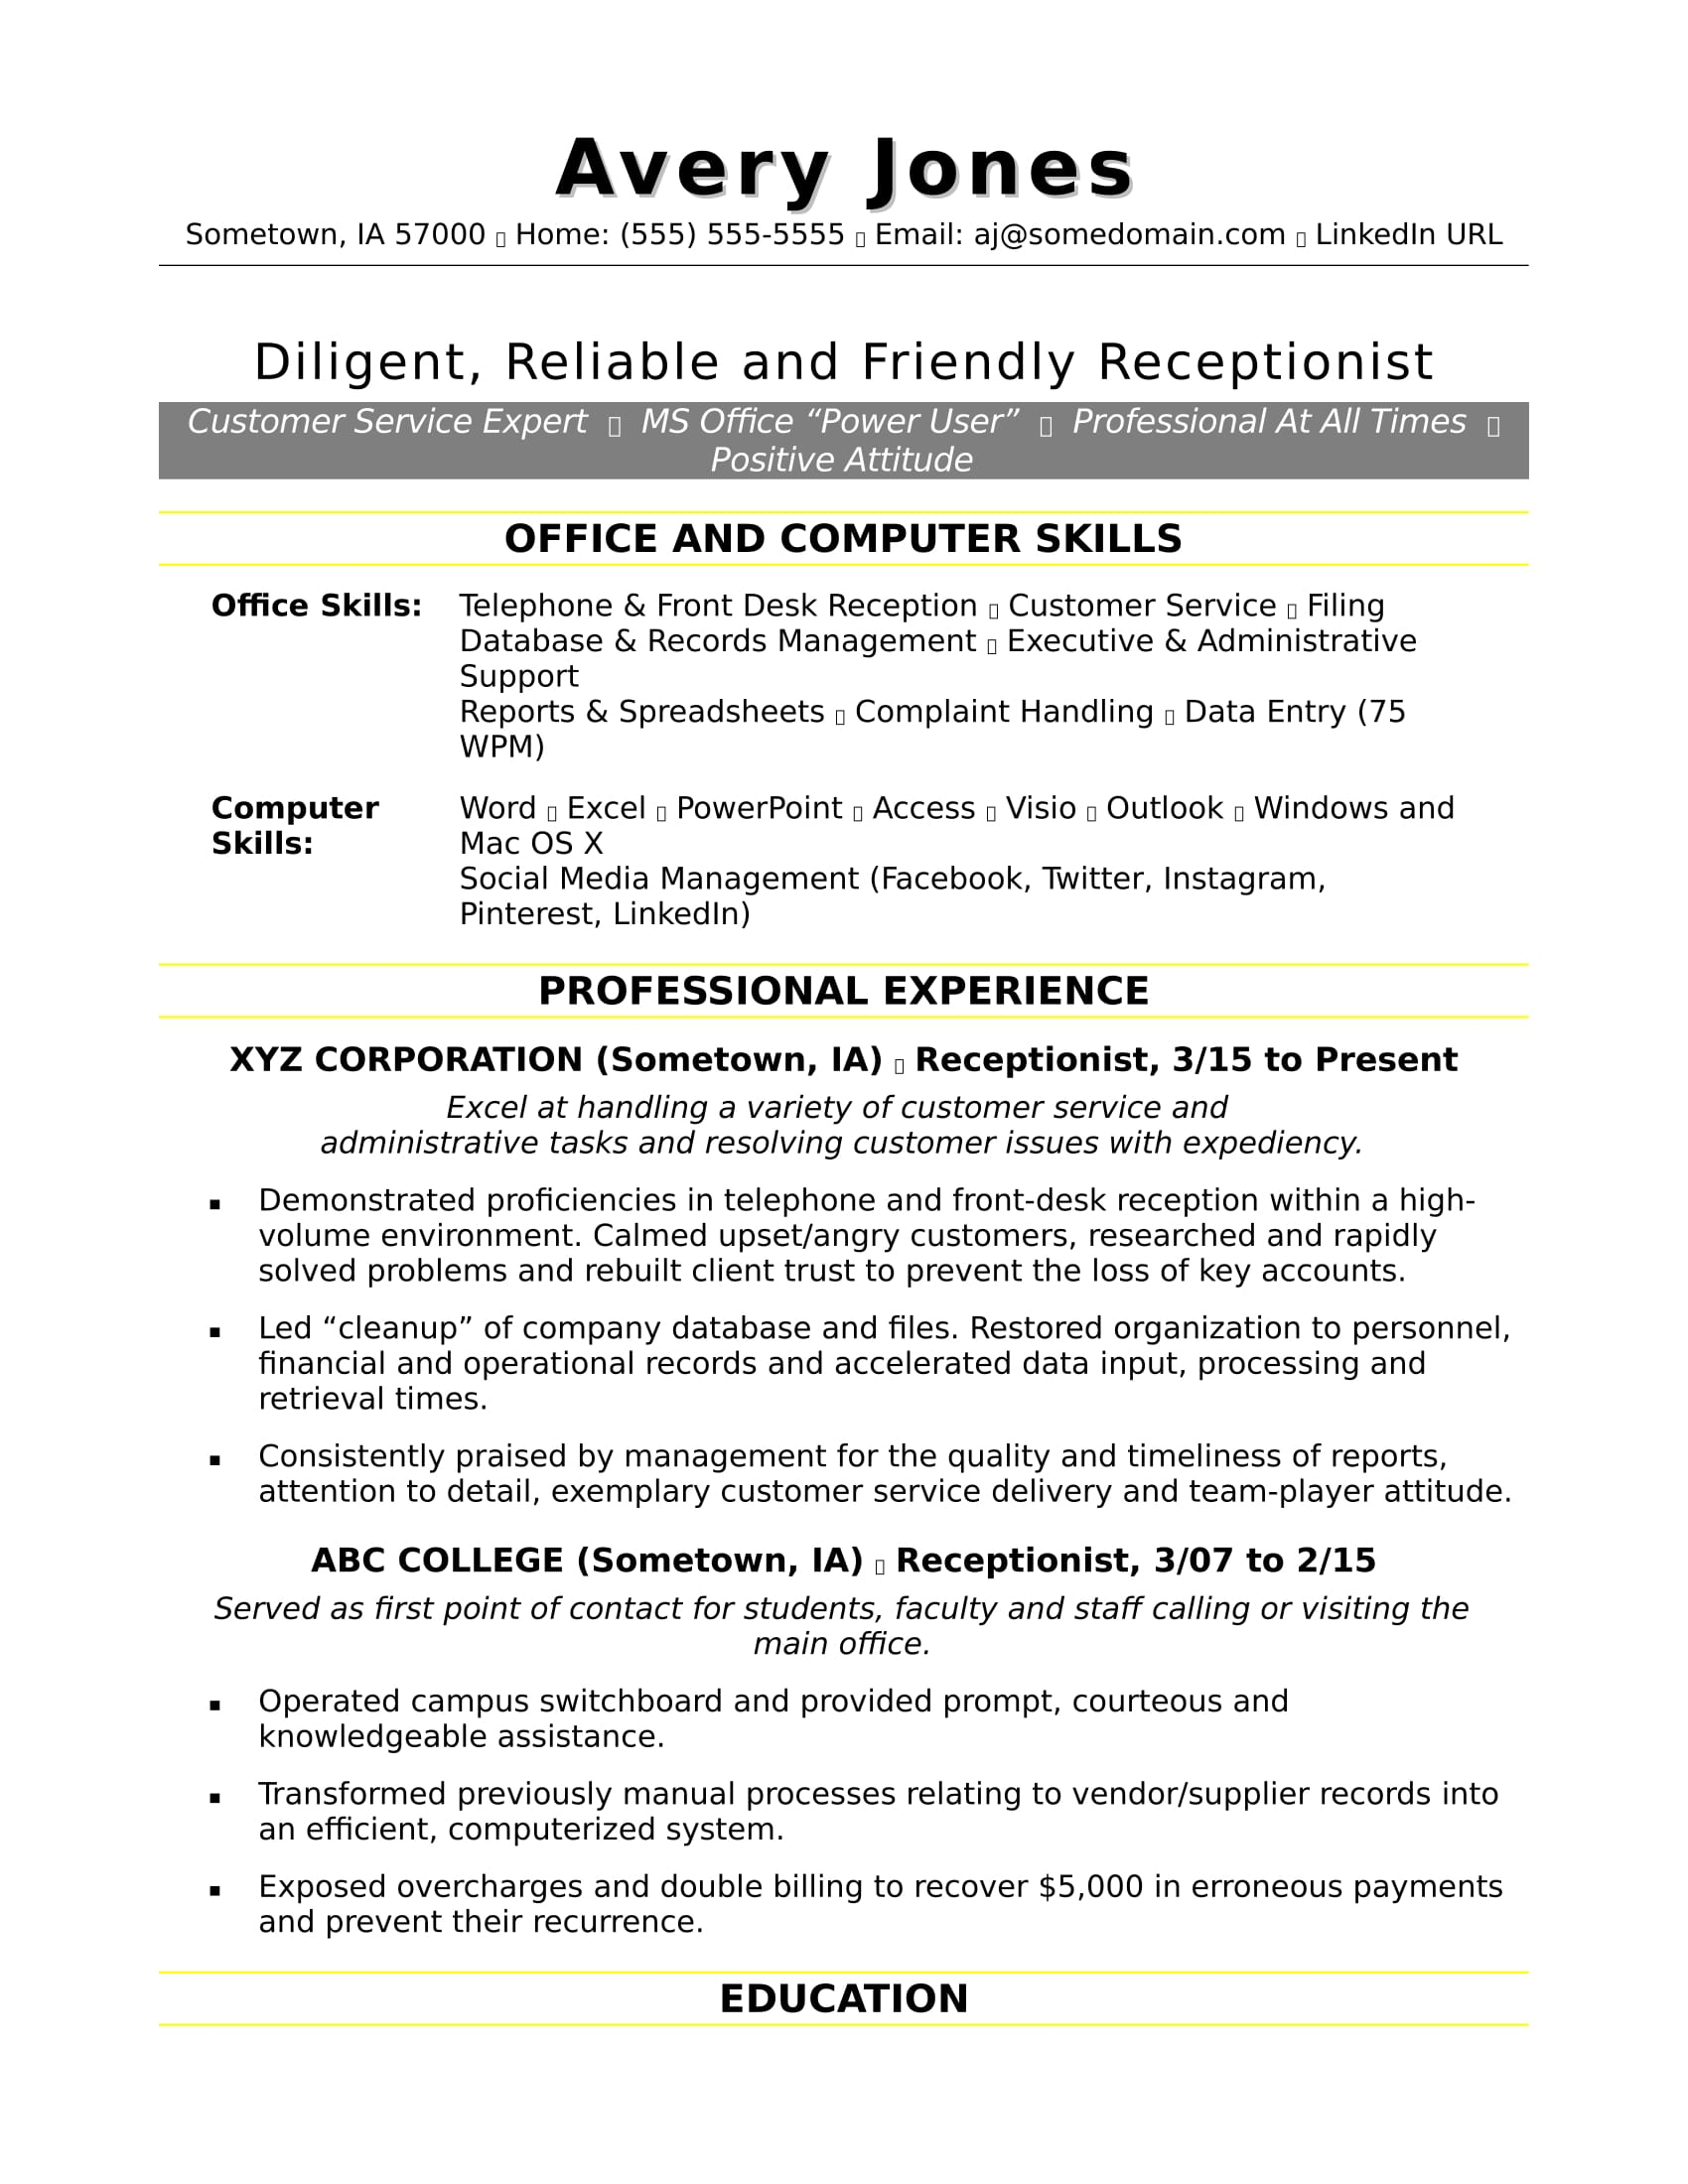 Sample Resume For A Receptionist  Office Skills Resume